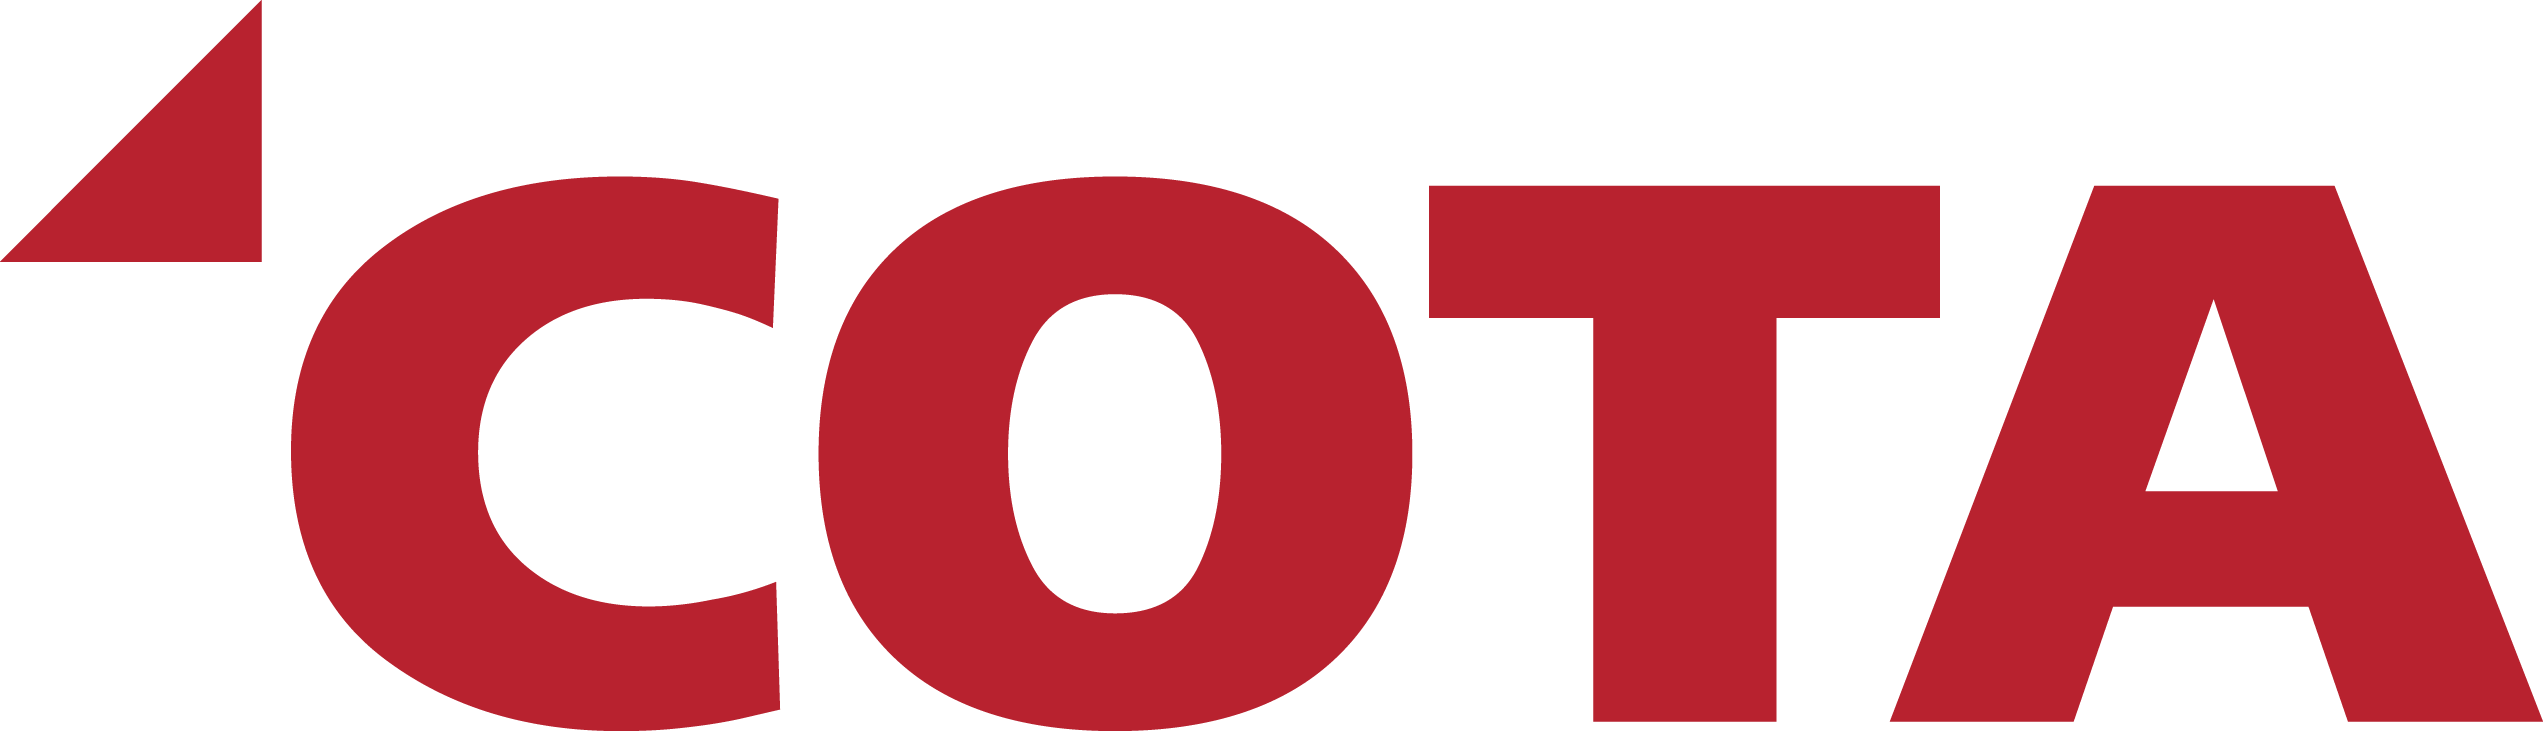 cota-logo-red